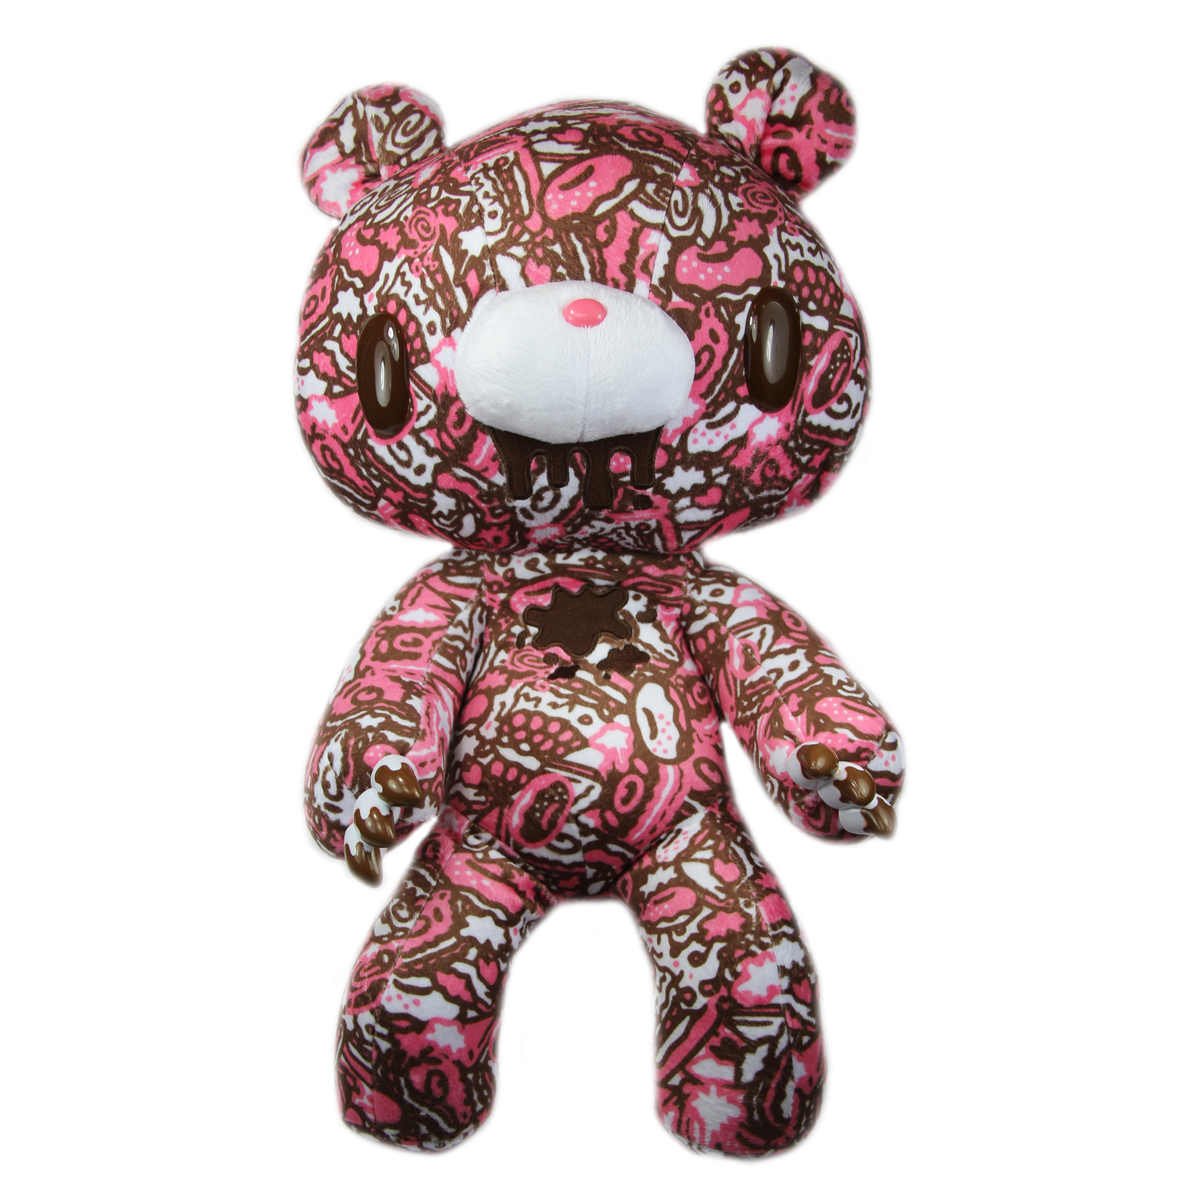 Taito Textillic Gloomy Bear Plush Doll Pink Brown GP #523 17 Inches